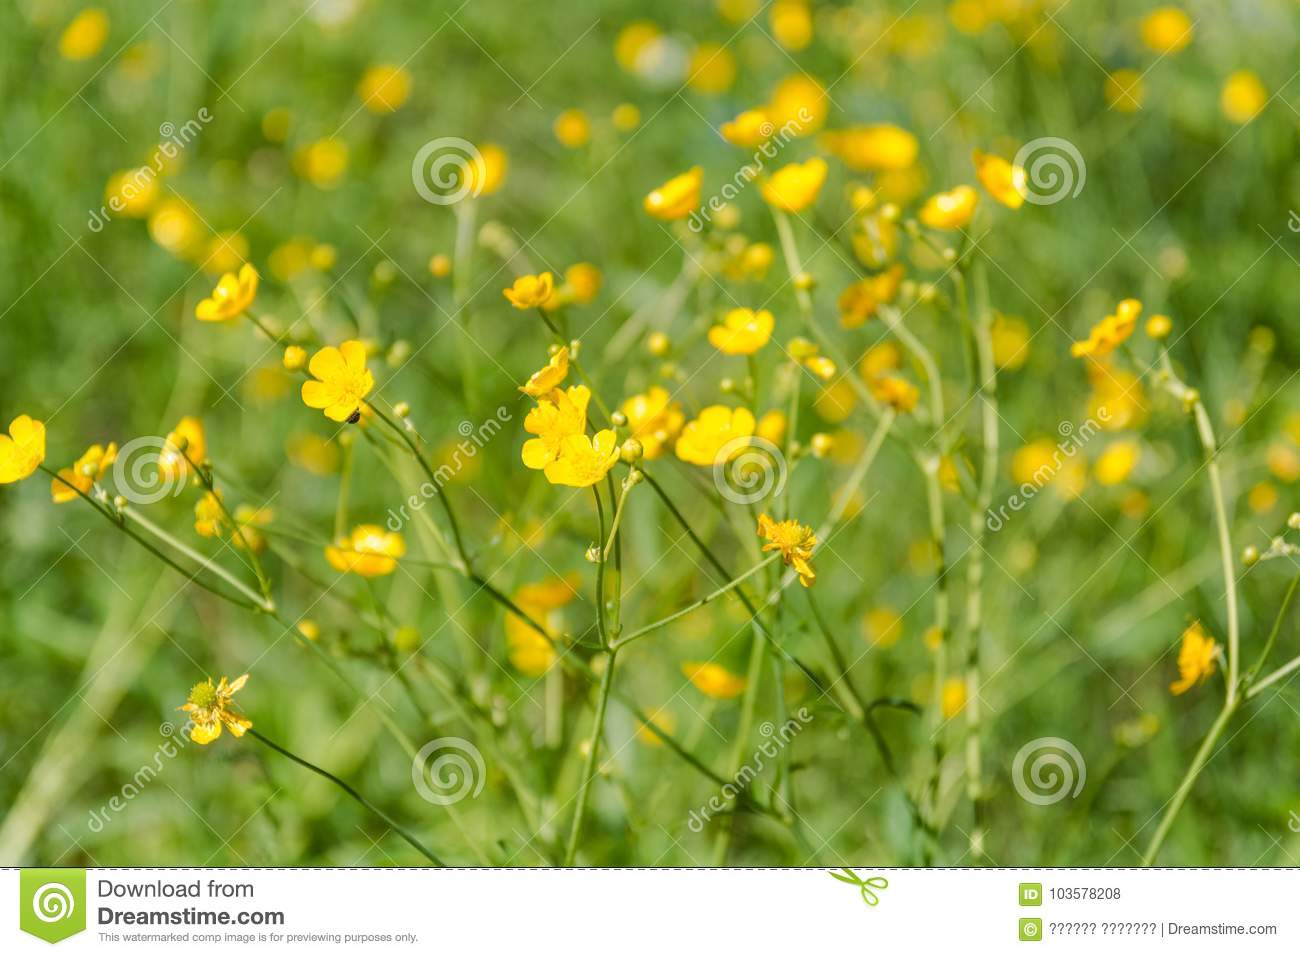 Yellow wild flowers blossoming of a yellow flower stock photo download yellow wild flowers blossoming of a yellow flower stock photo image of mightylinksfo